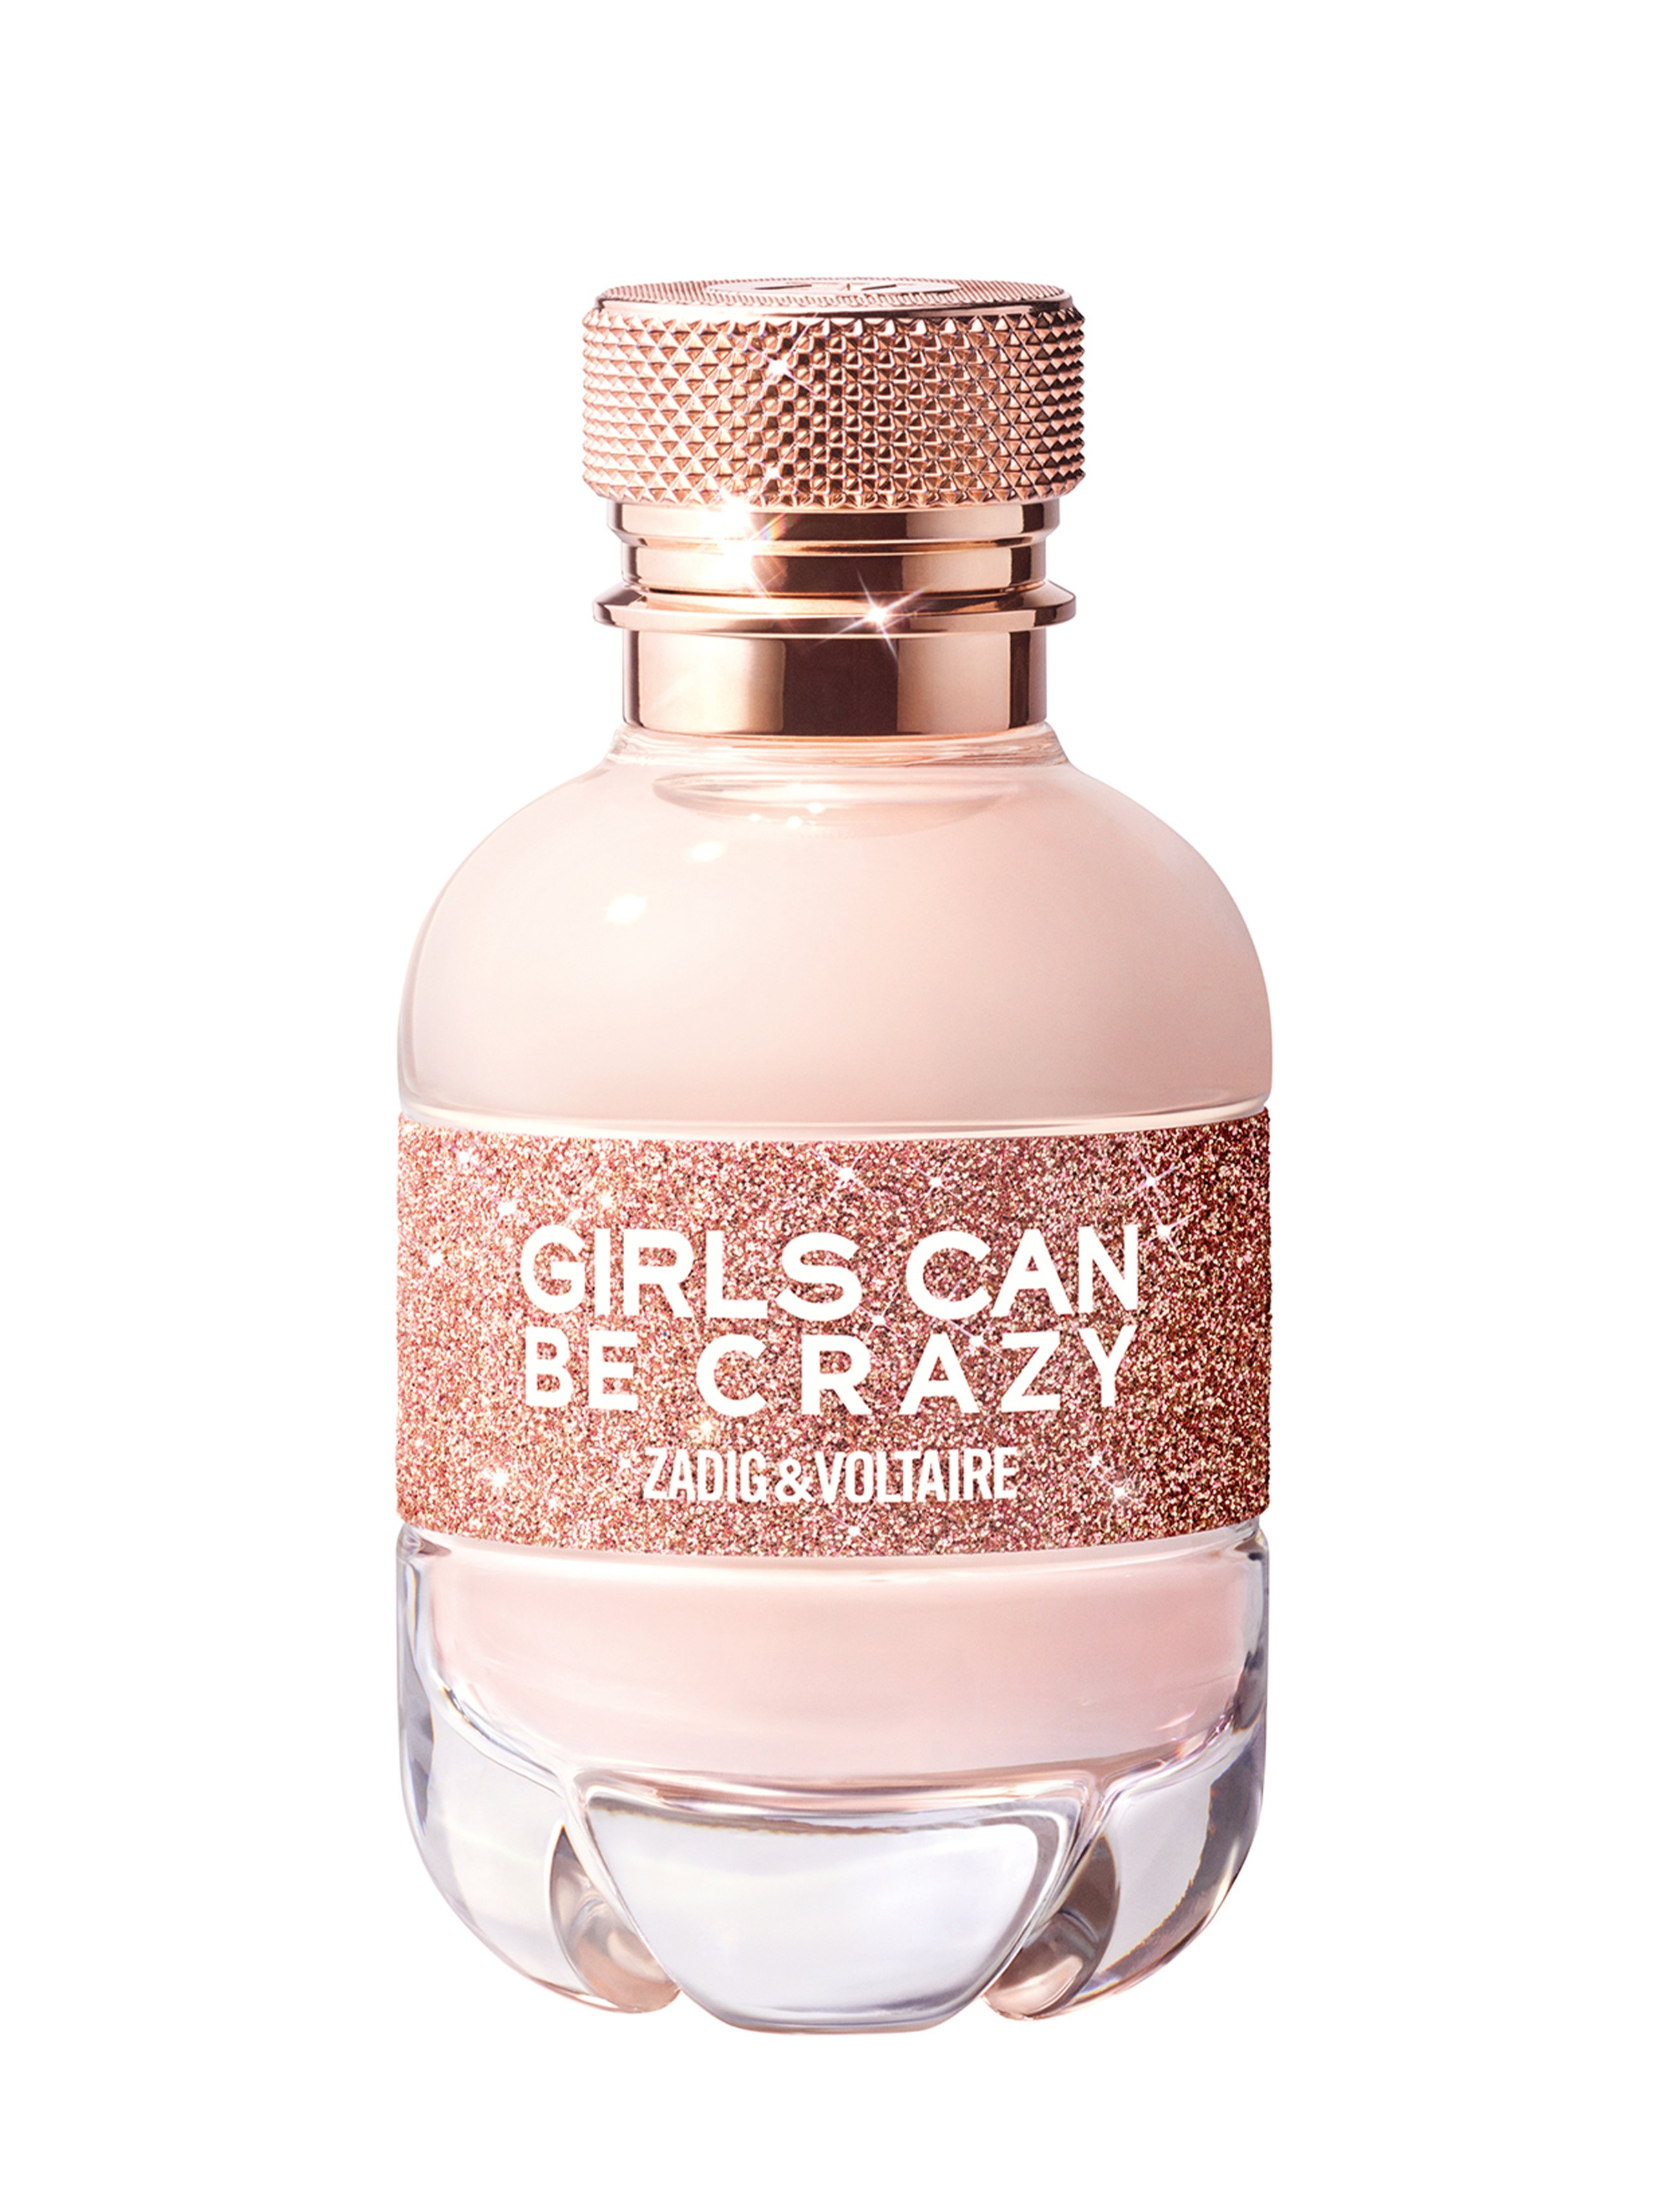 Zadig & Voltaire - Girls Can Be Crazy EDP